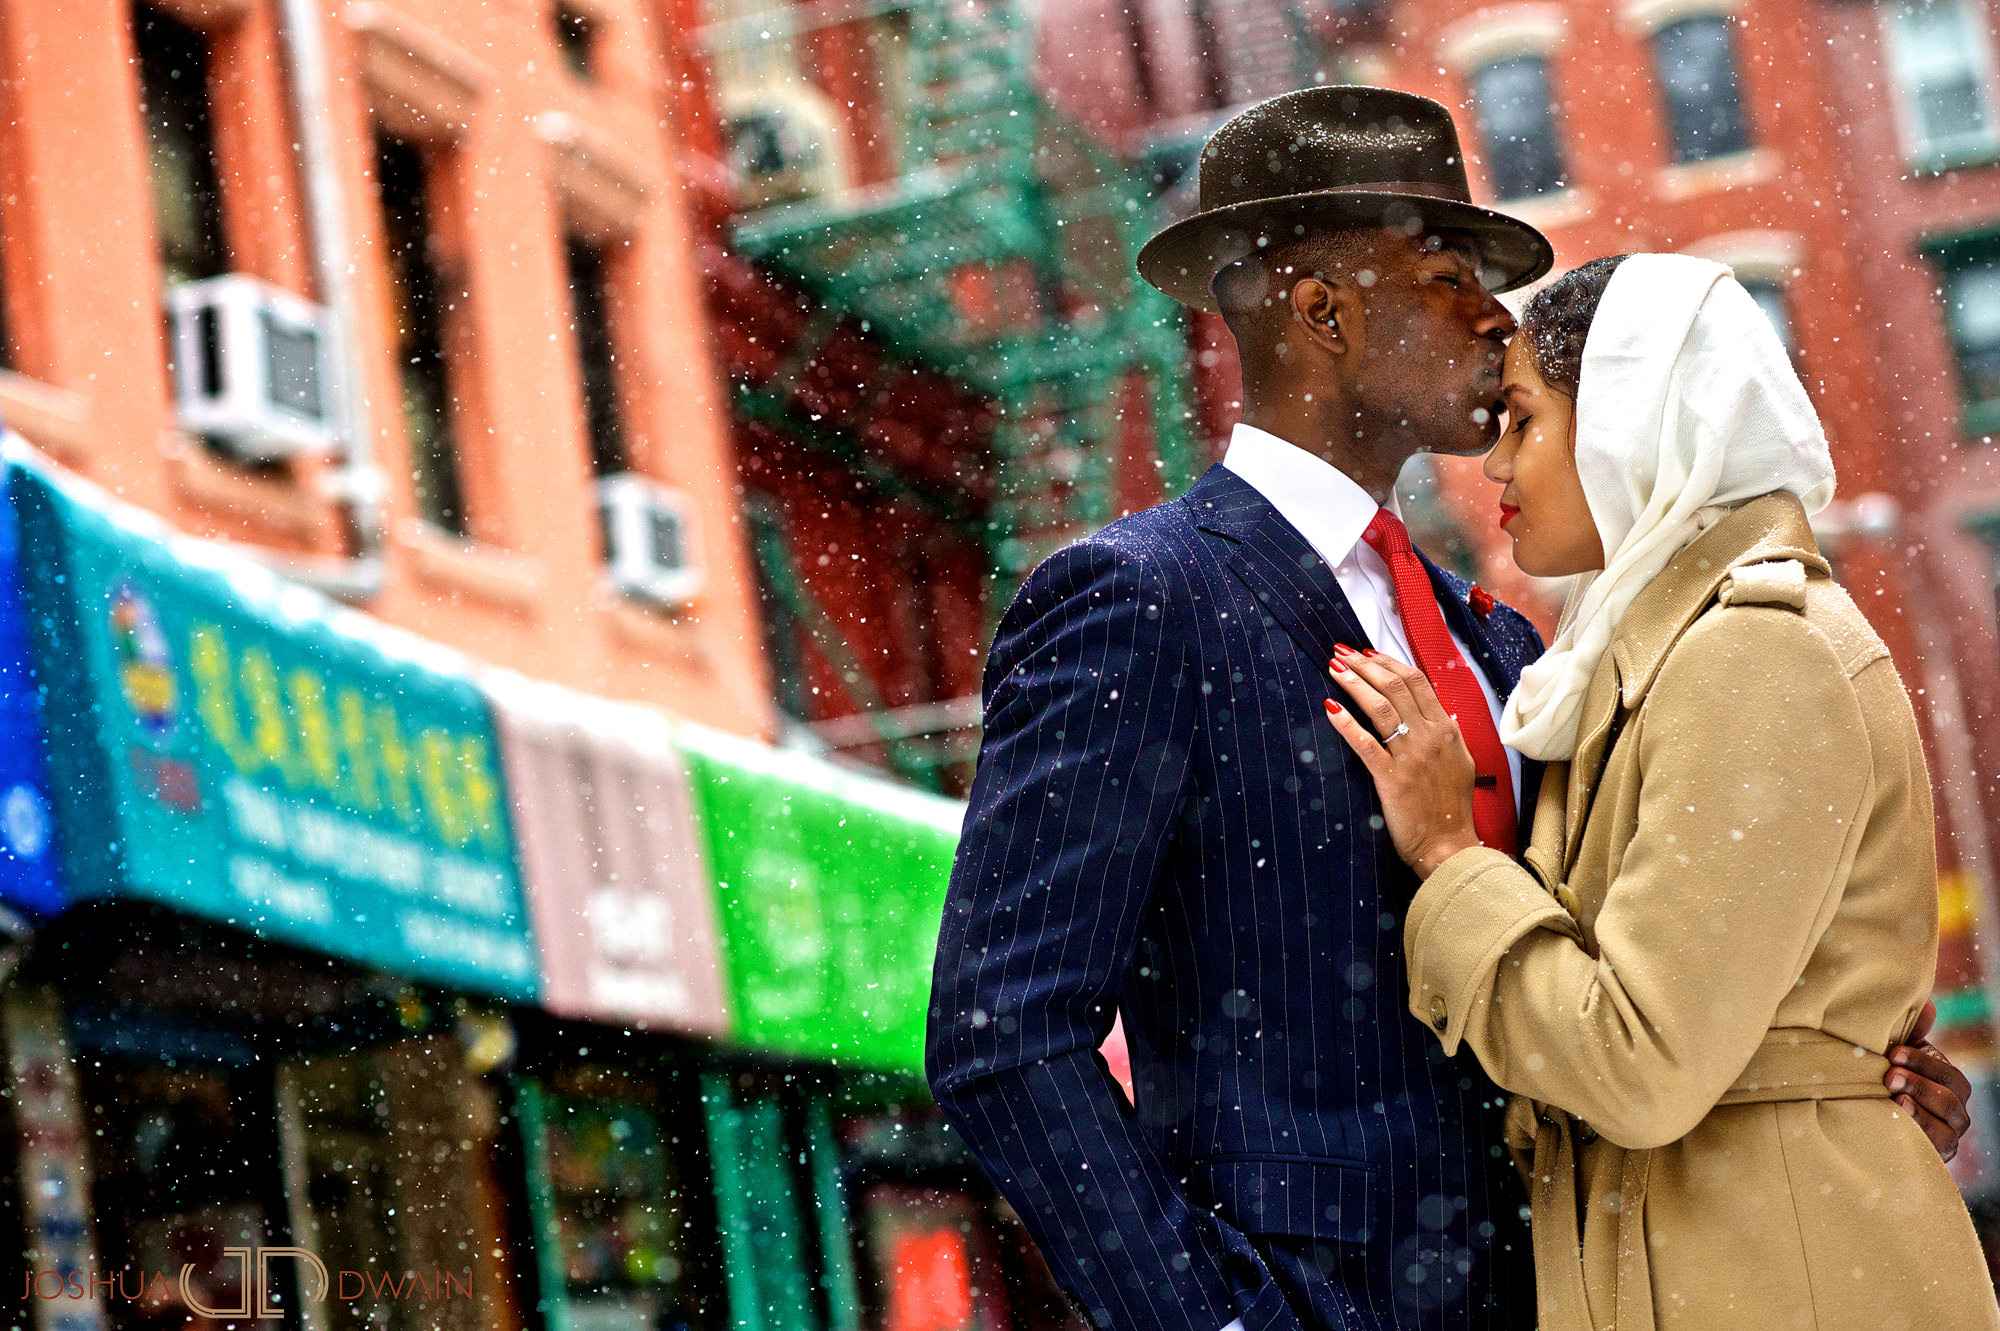 Chinatown ny engagement photos for African photoshoot ideas